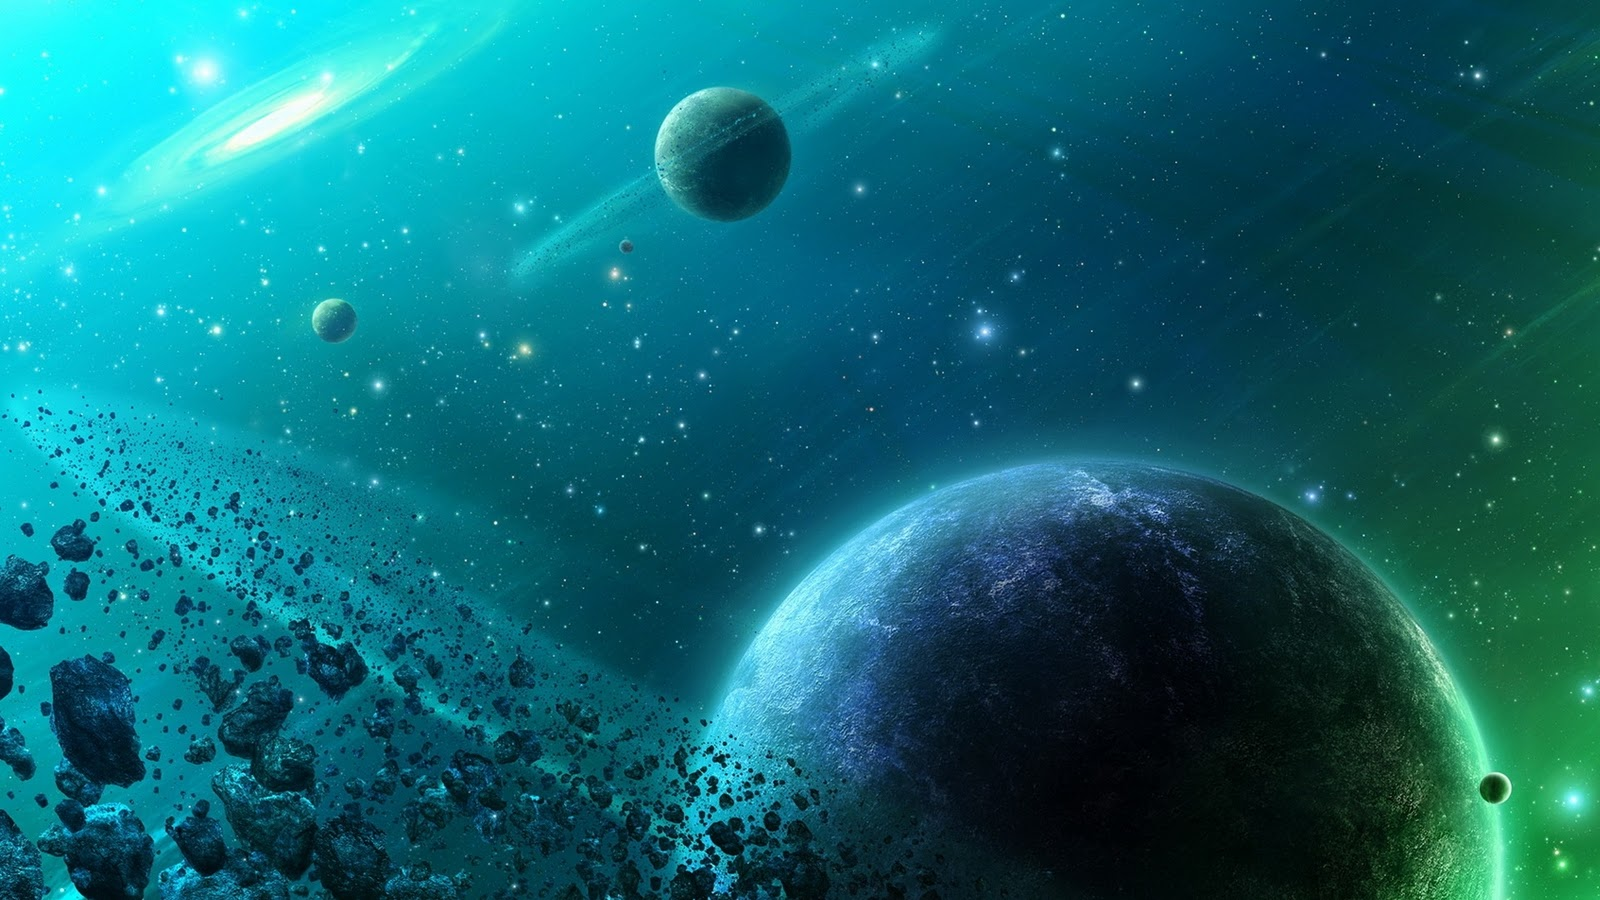 Space Wallpapers HD Wallpapers HD Wallpapers Desktop Wallapers 1600x900